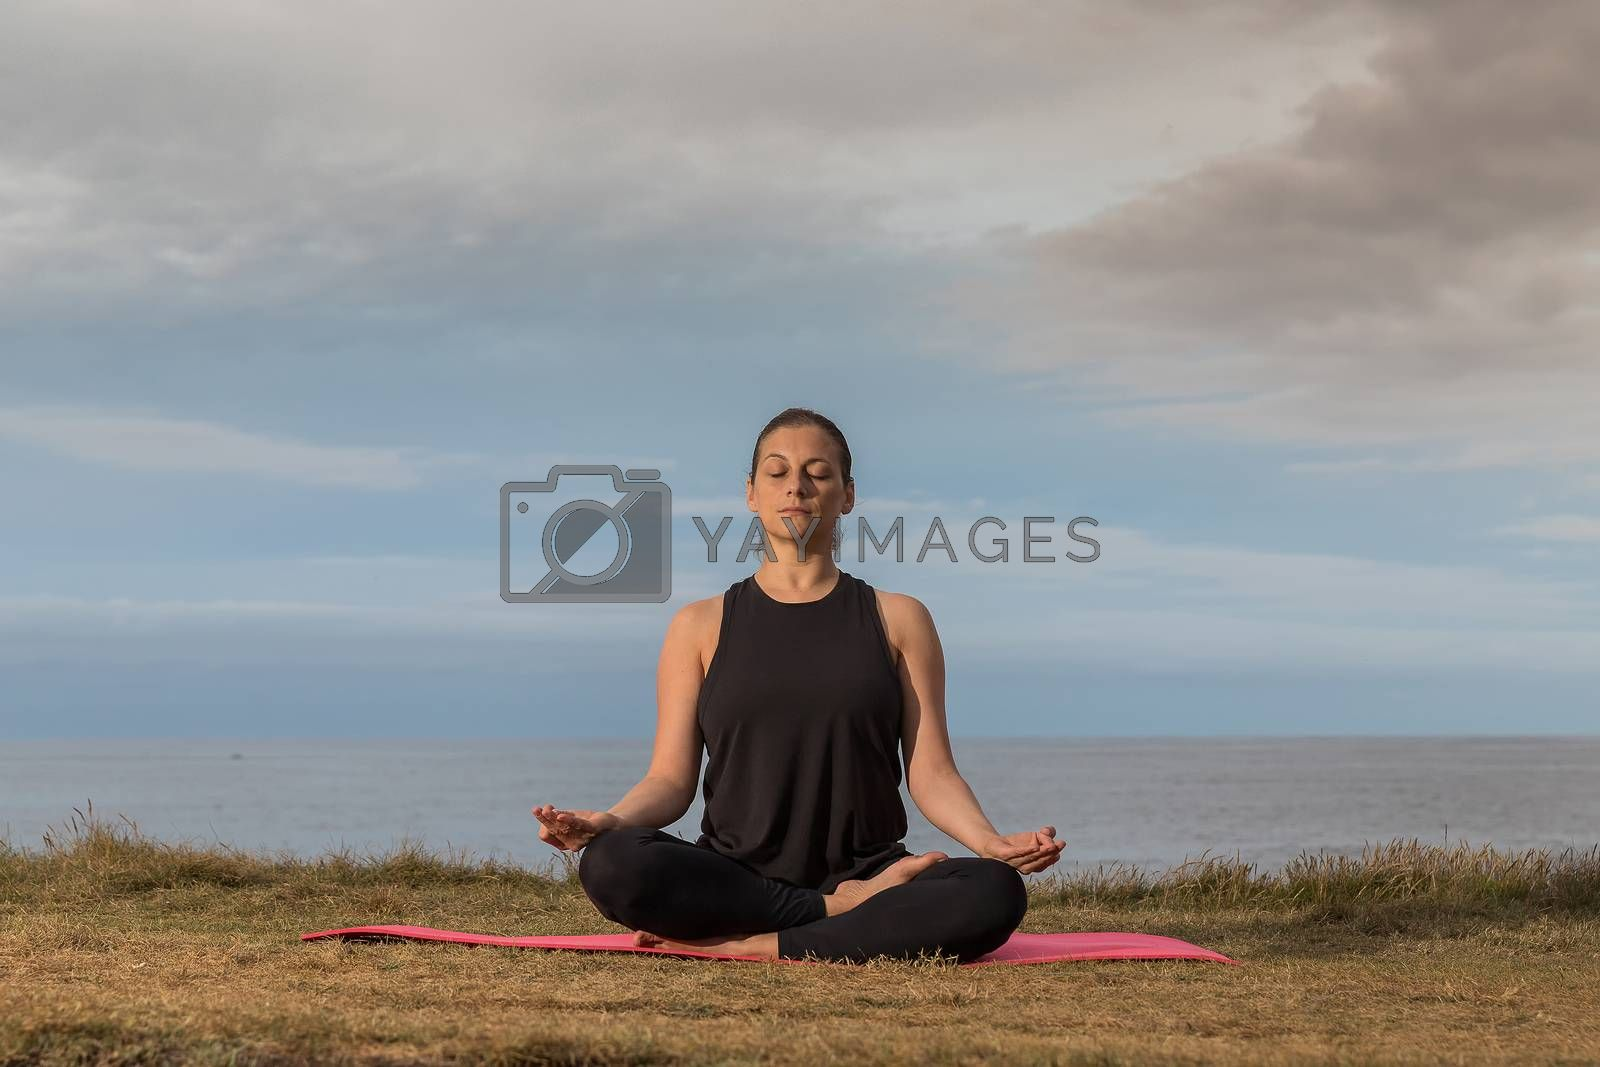 Woman in sportswear doing yoga outdoors on a pink mat with the sea in the background.